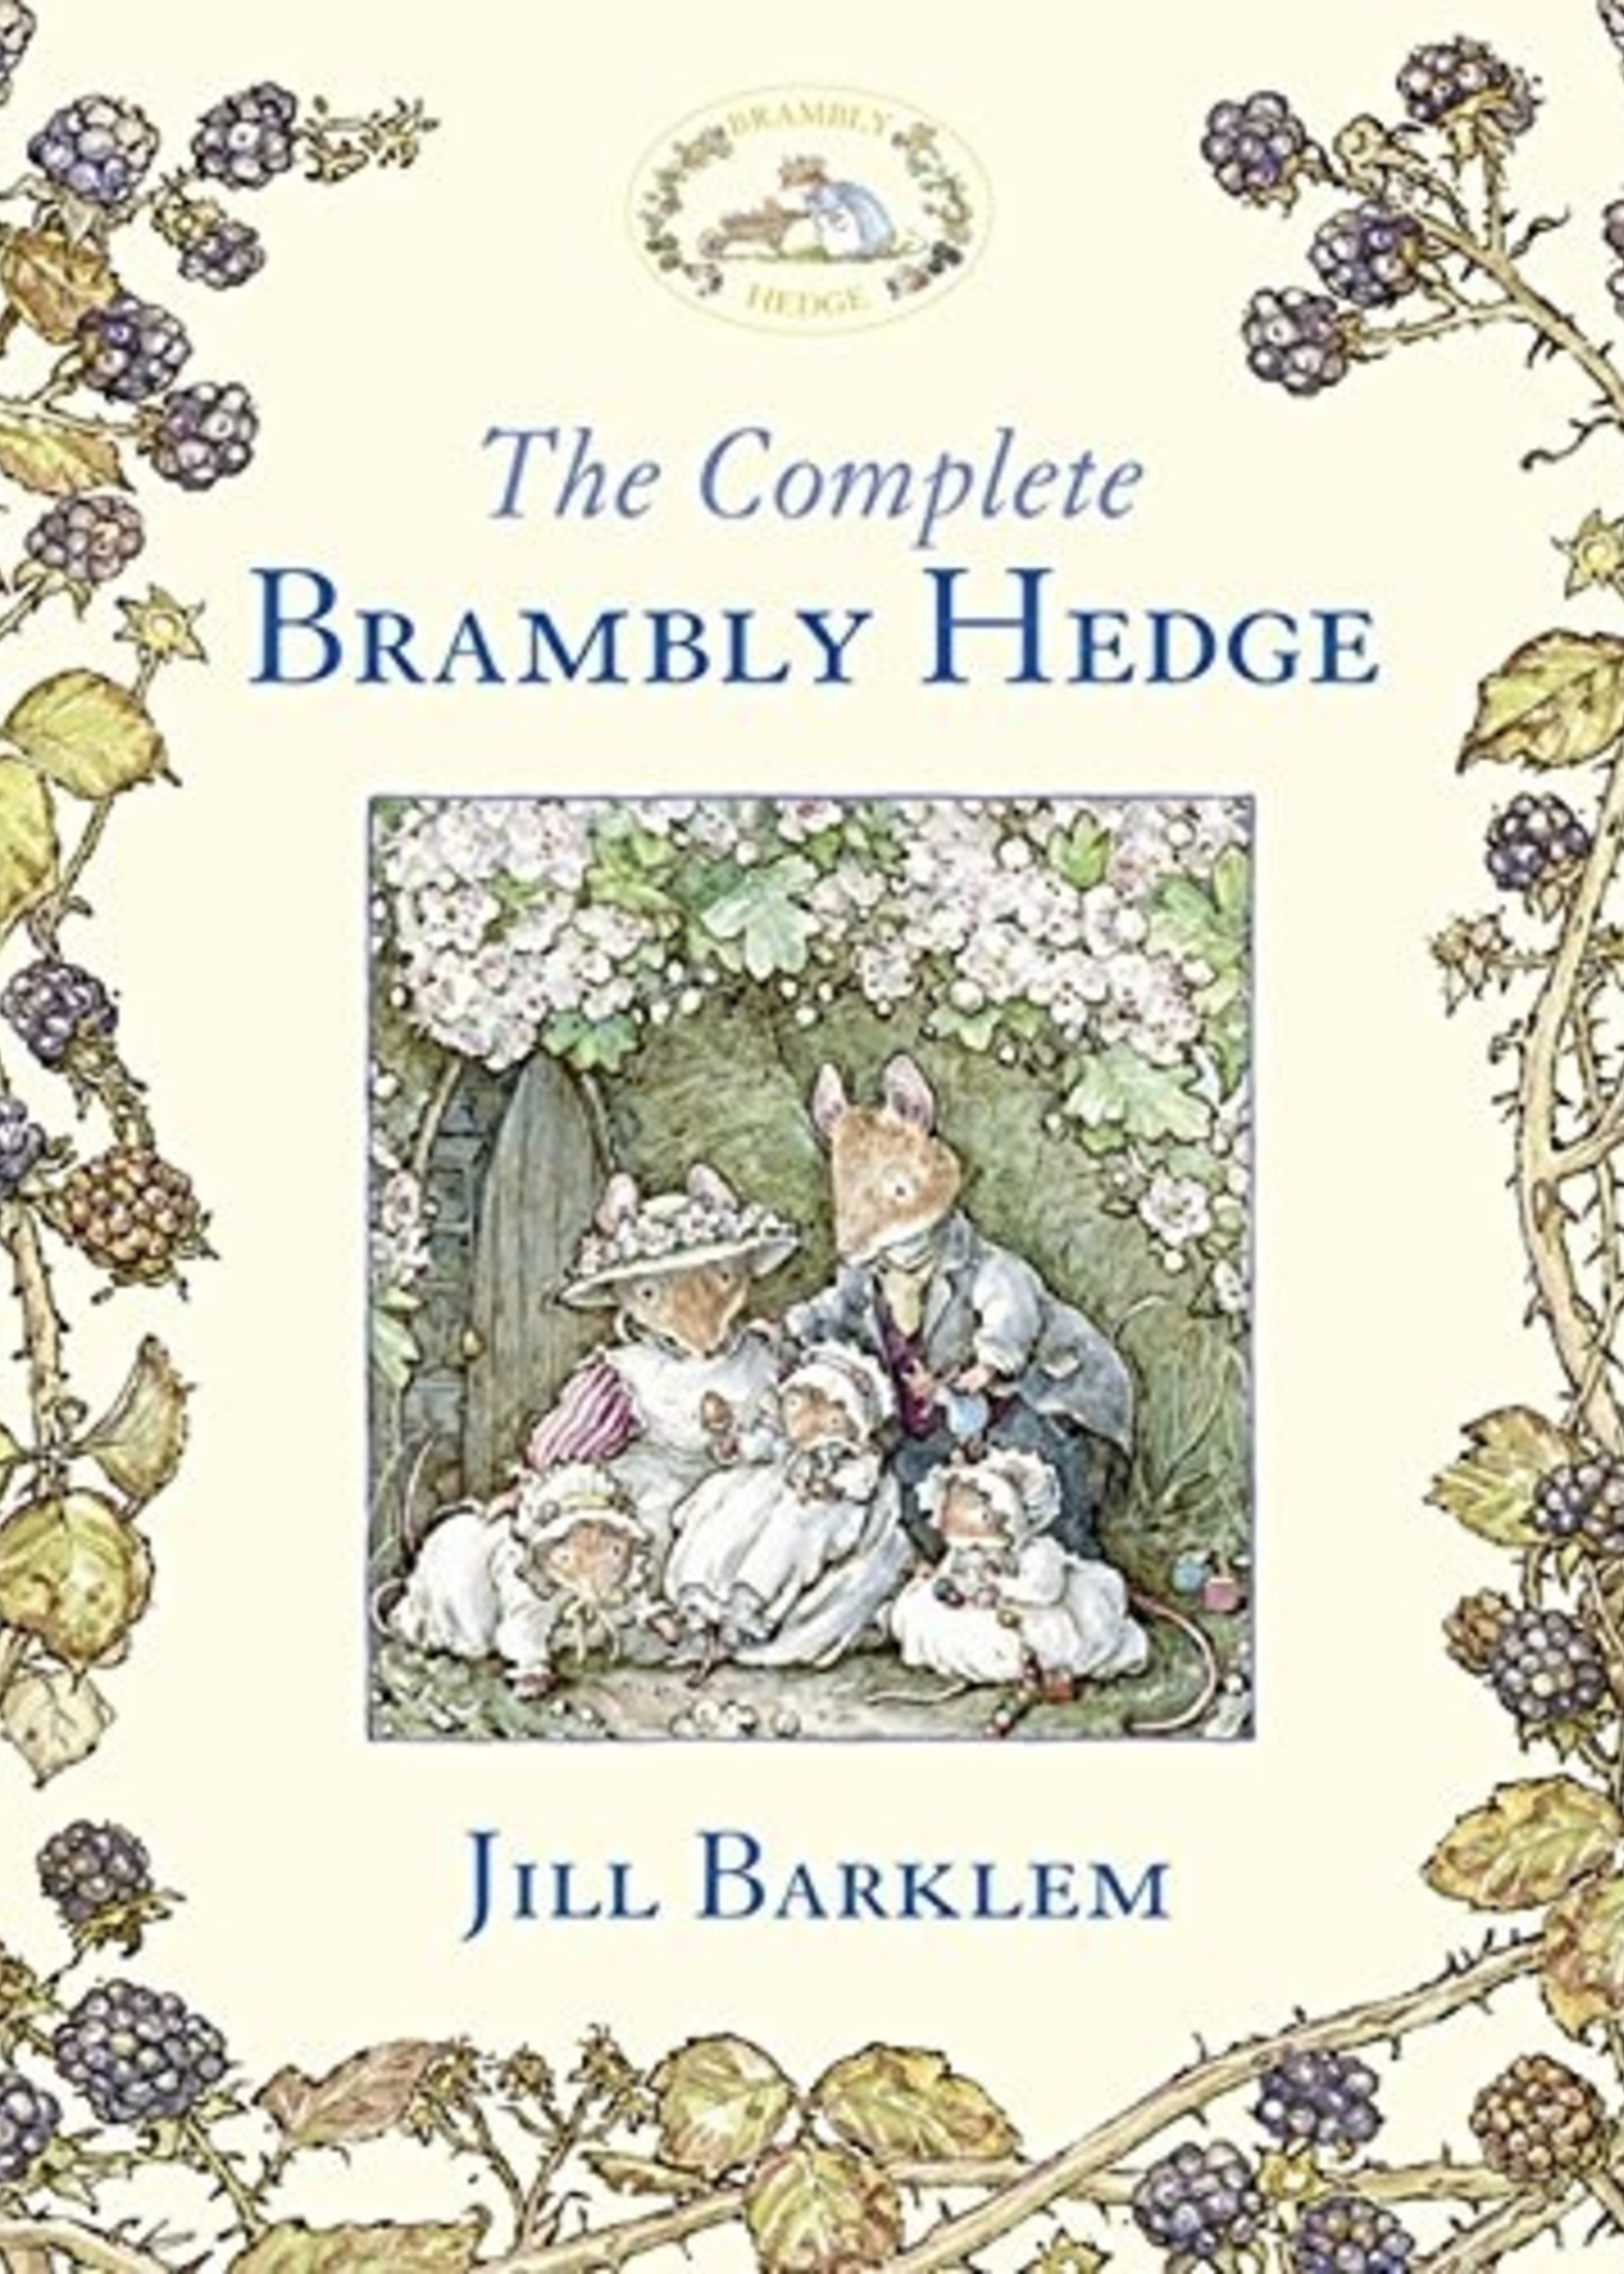 The Complete Brambly Hedge - Hardcover